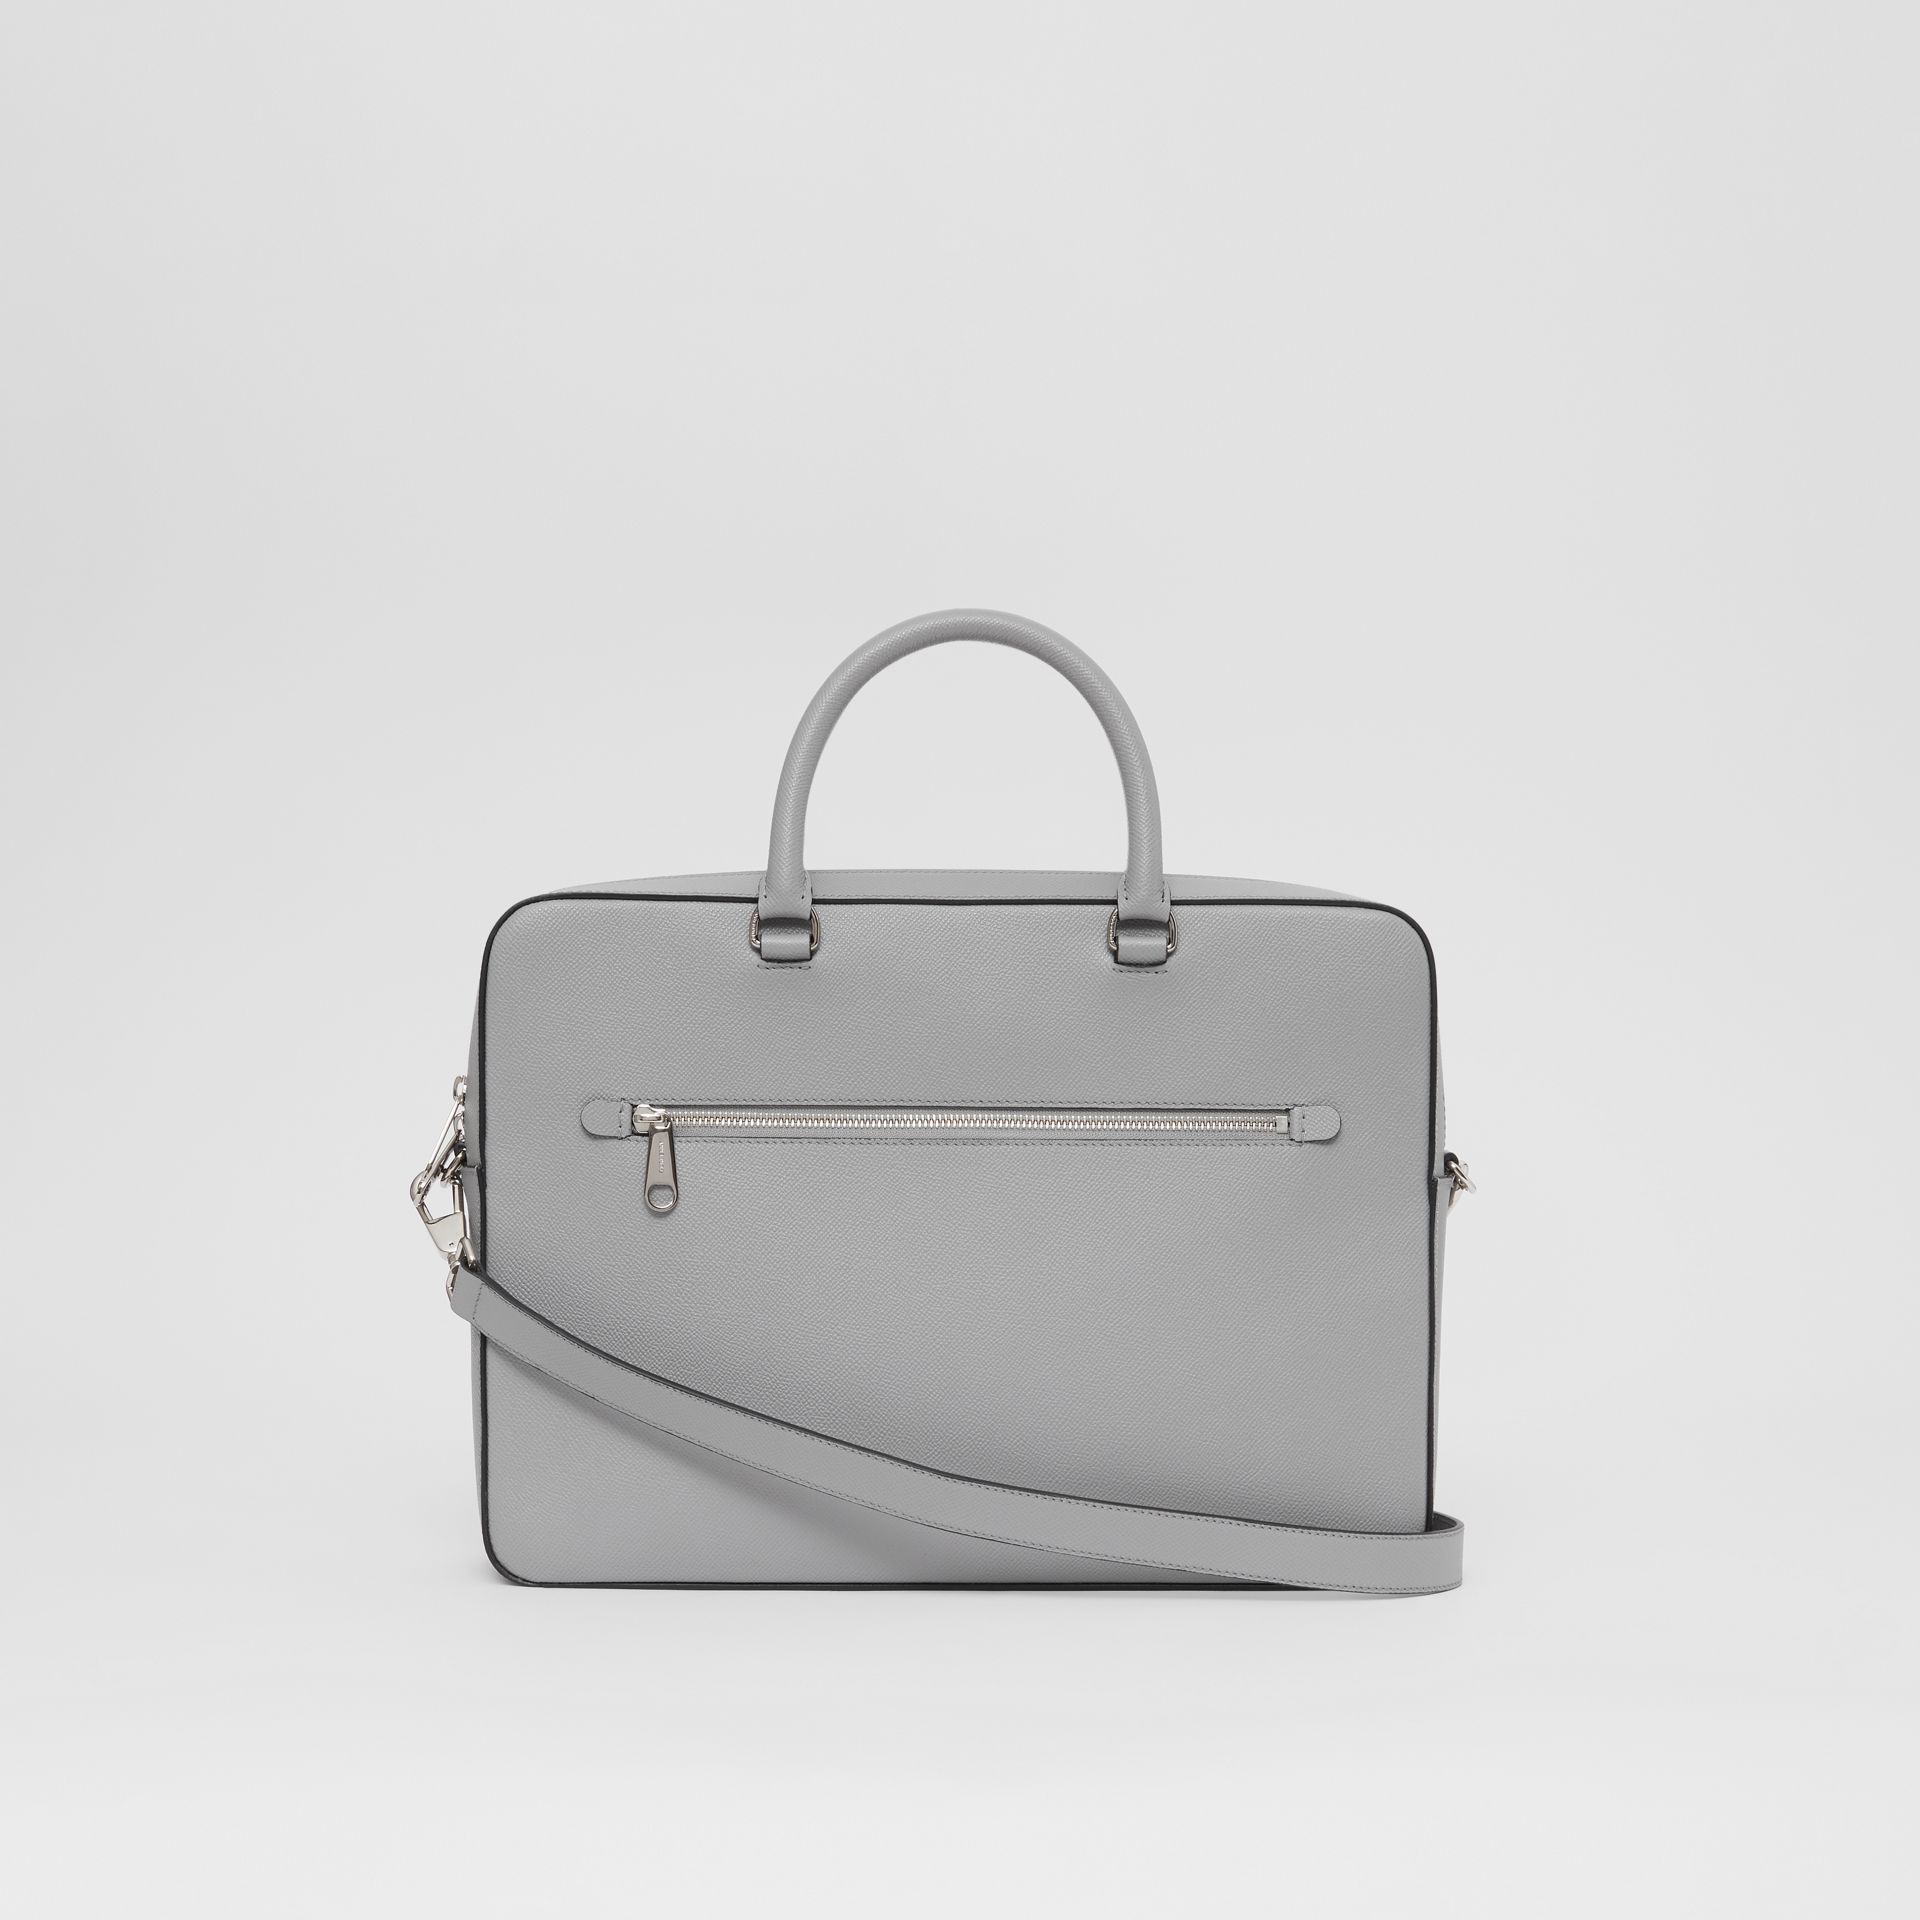 Grainy Leather Briefcase in Cloud Grey - Men | Burberry - gallery image 7